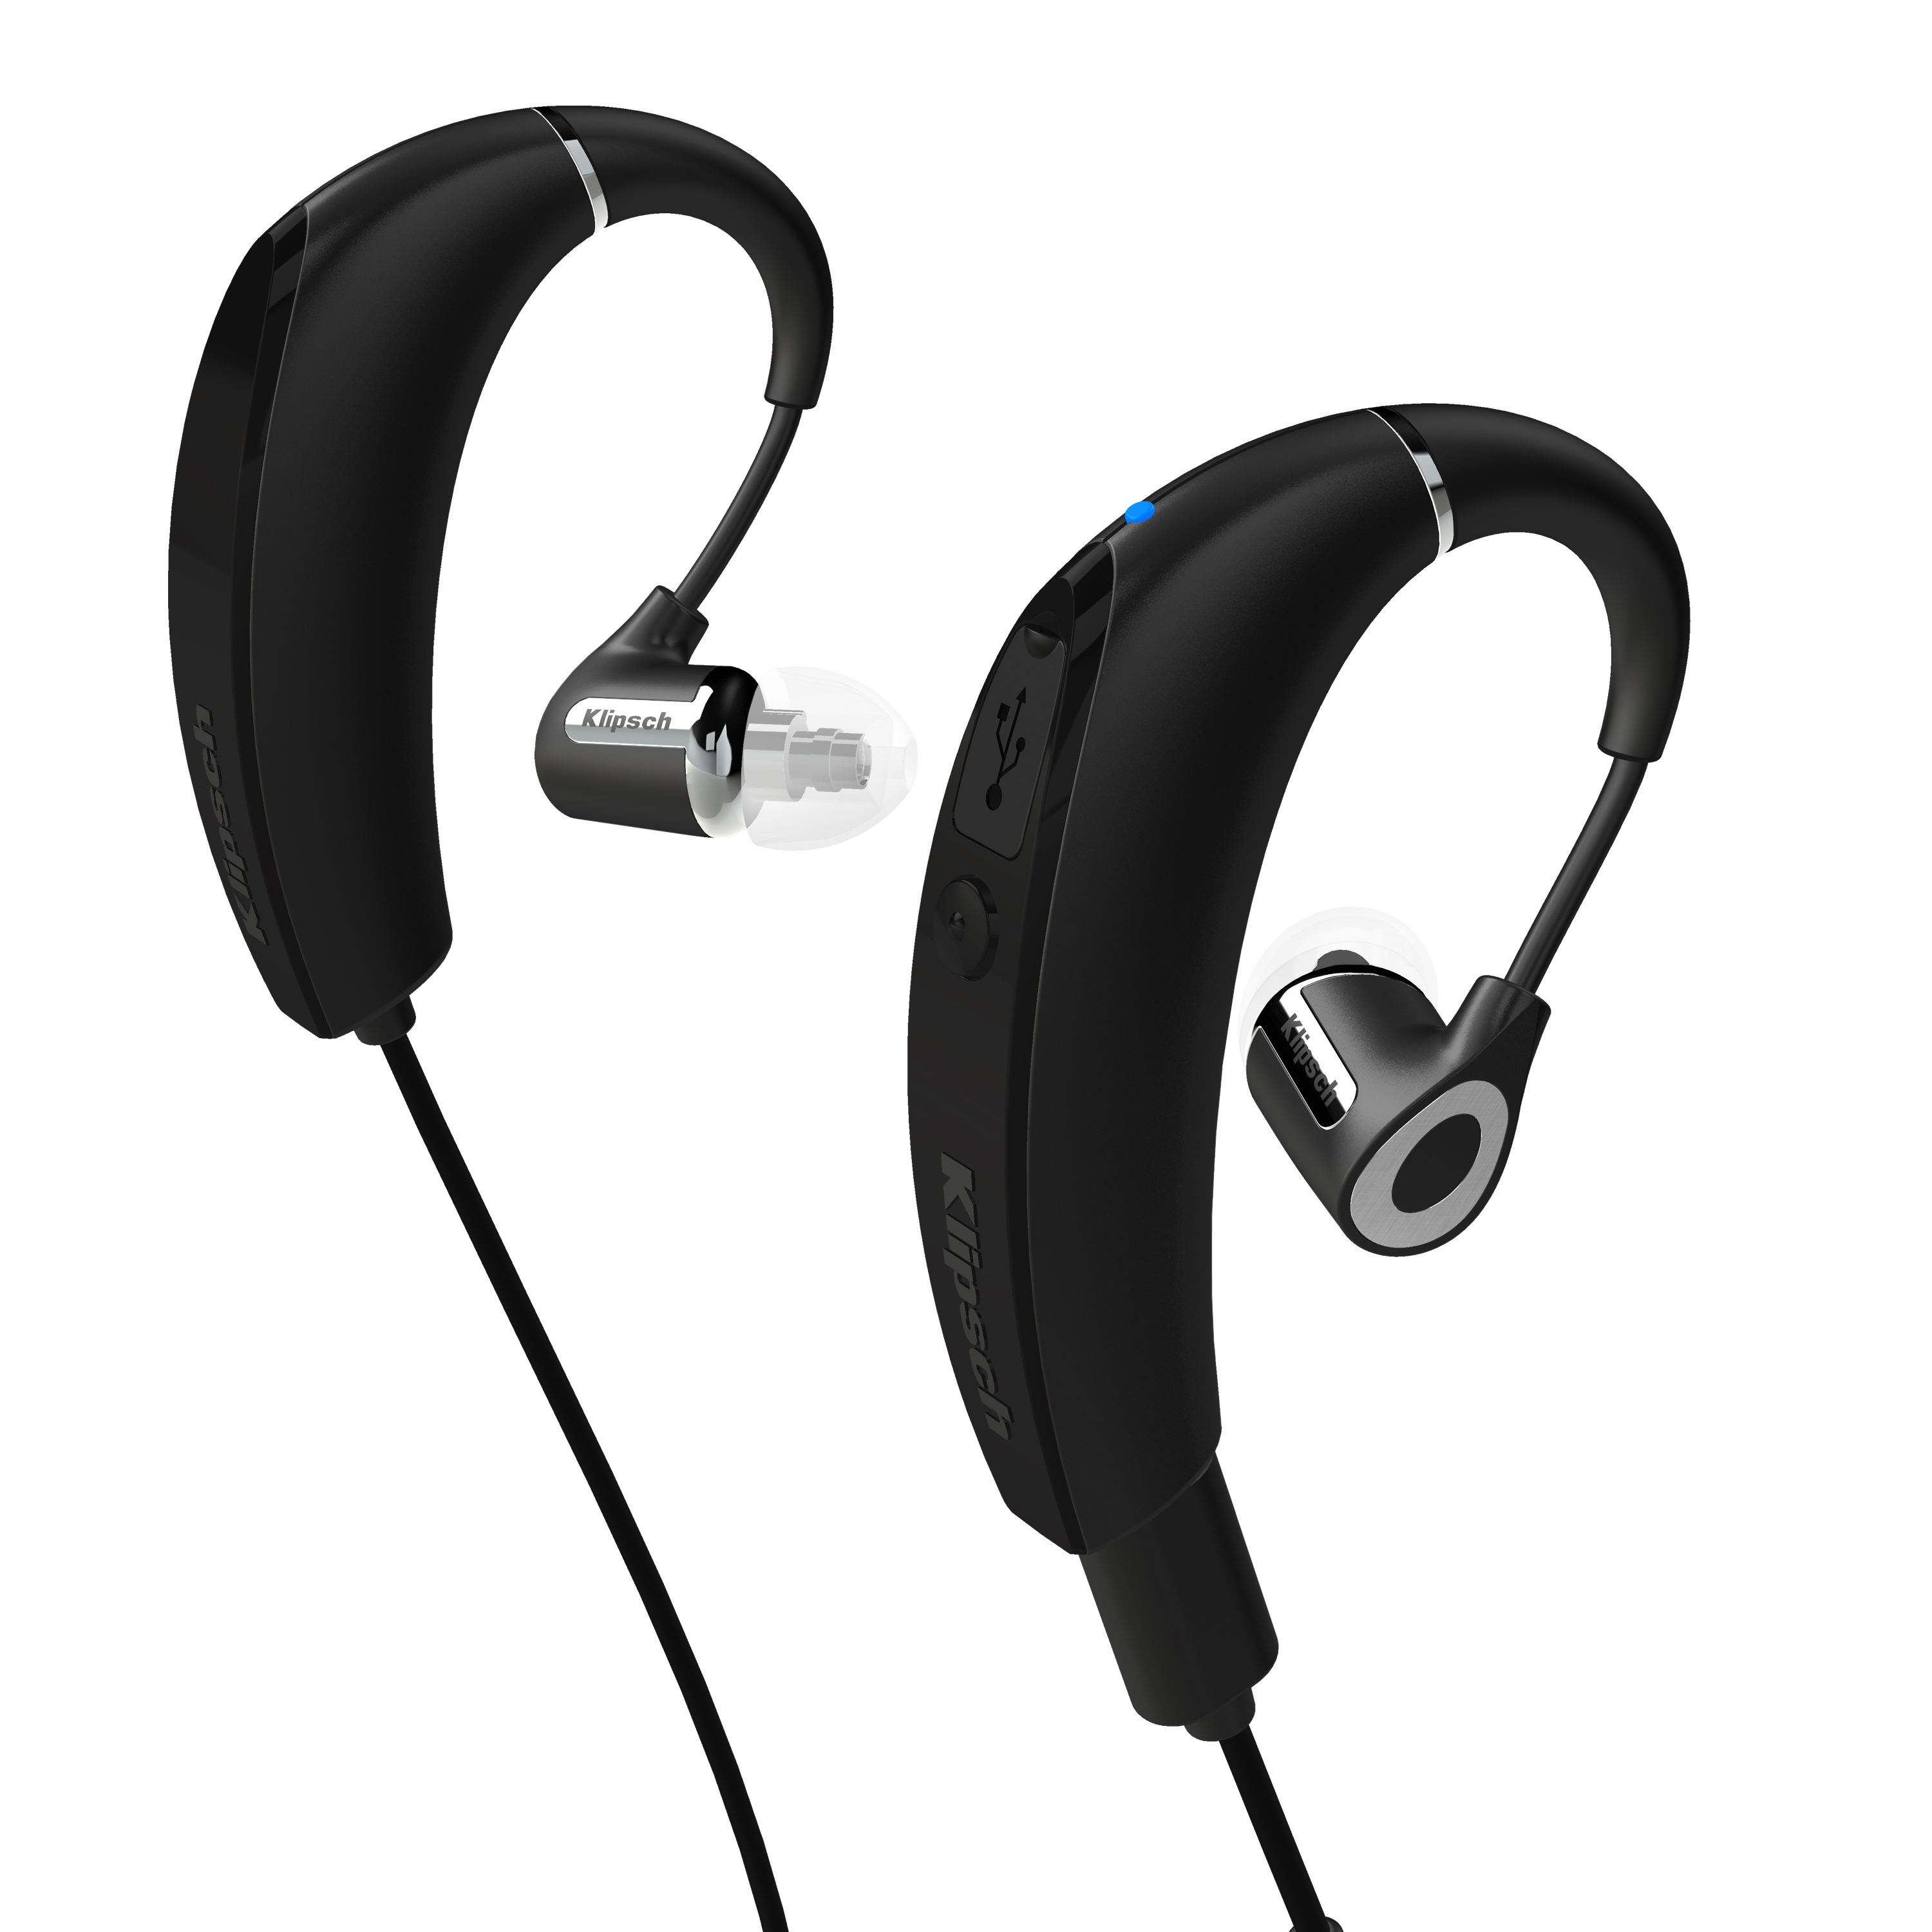 bluetooth earbuds r6 wireless headphones klipsch. Black Bedroom Furniture Sets. Home Design Ideas